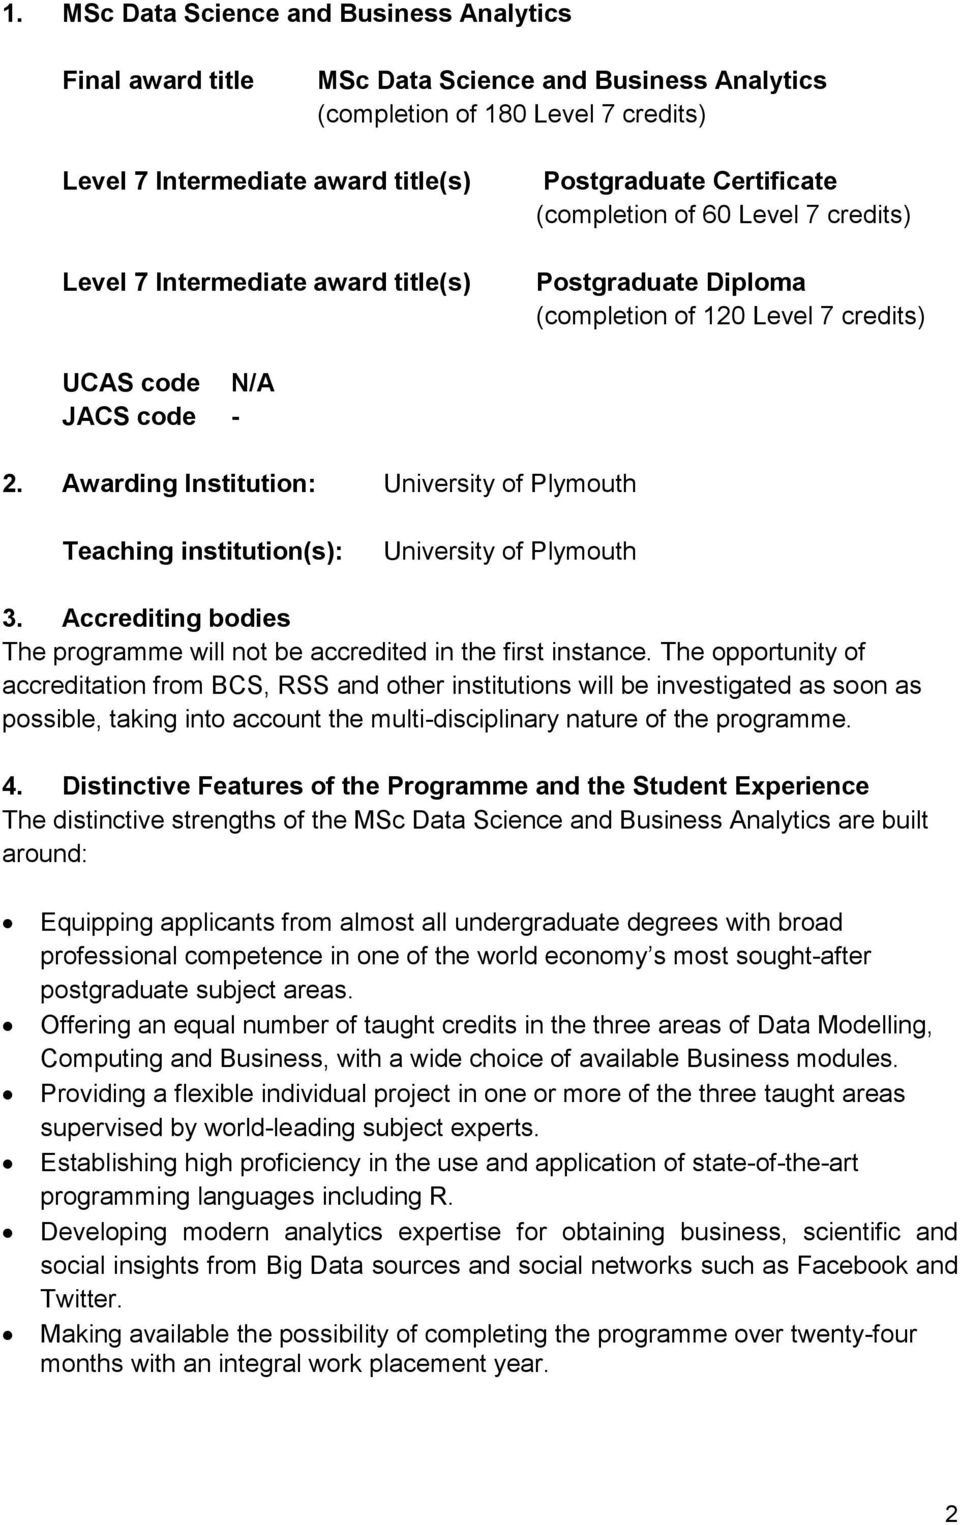 Awarding Institution: University of Plymouth Teaching institution(s): University of Plymouth 3. Accrediting bodies The programme will not be accredited in the first instance.